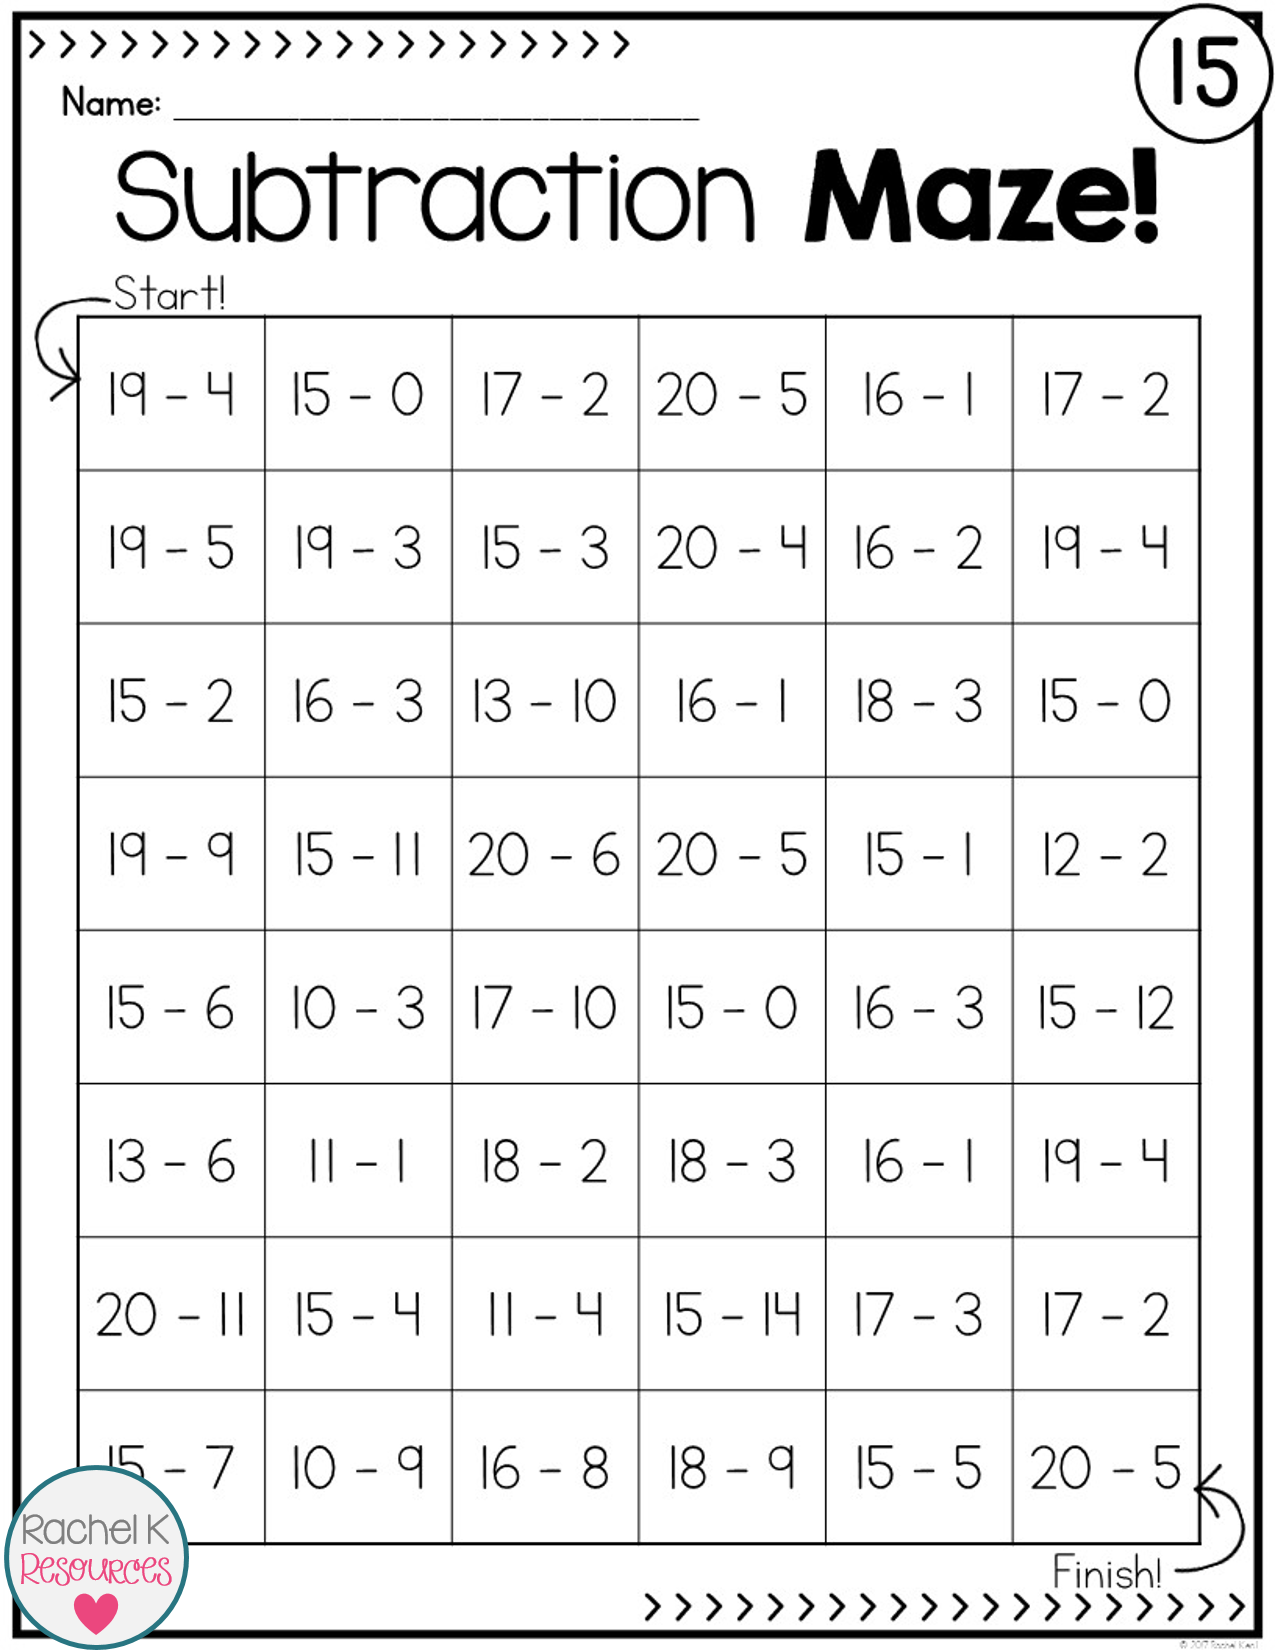 Subtraction Practice Mazes With Images